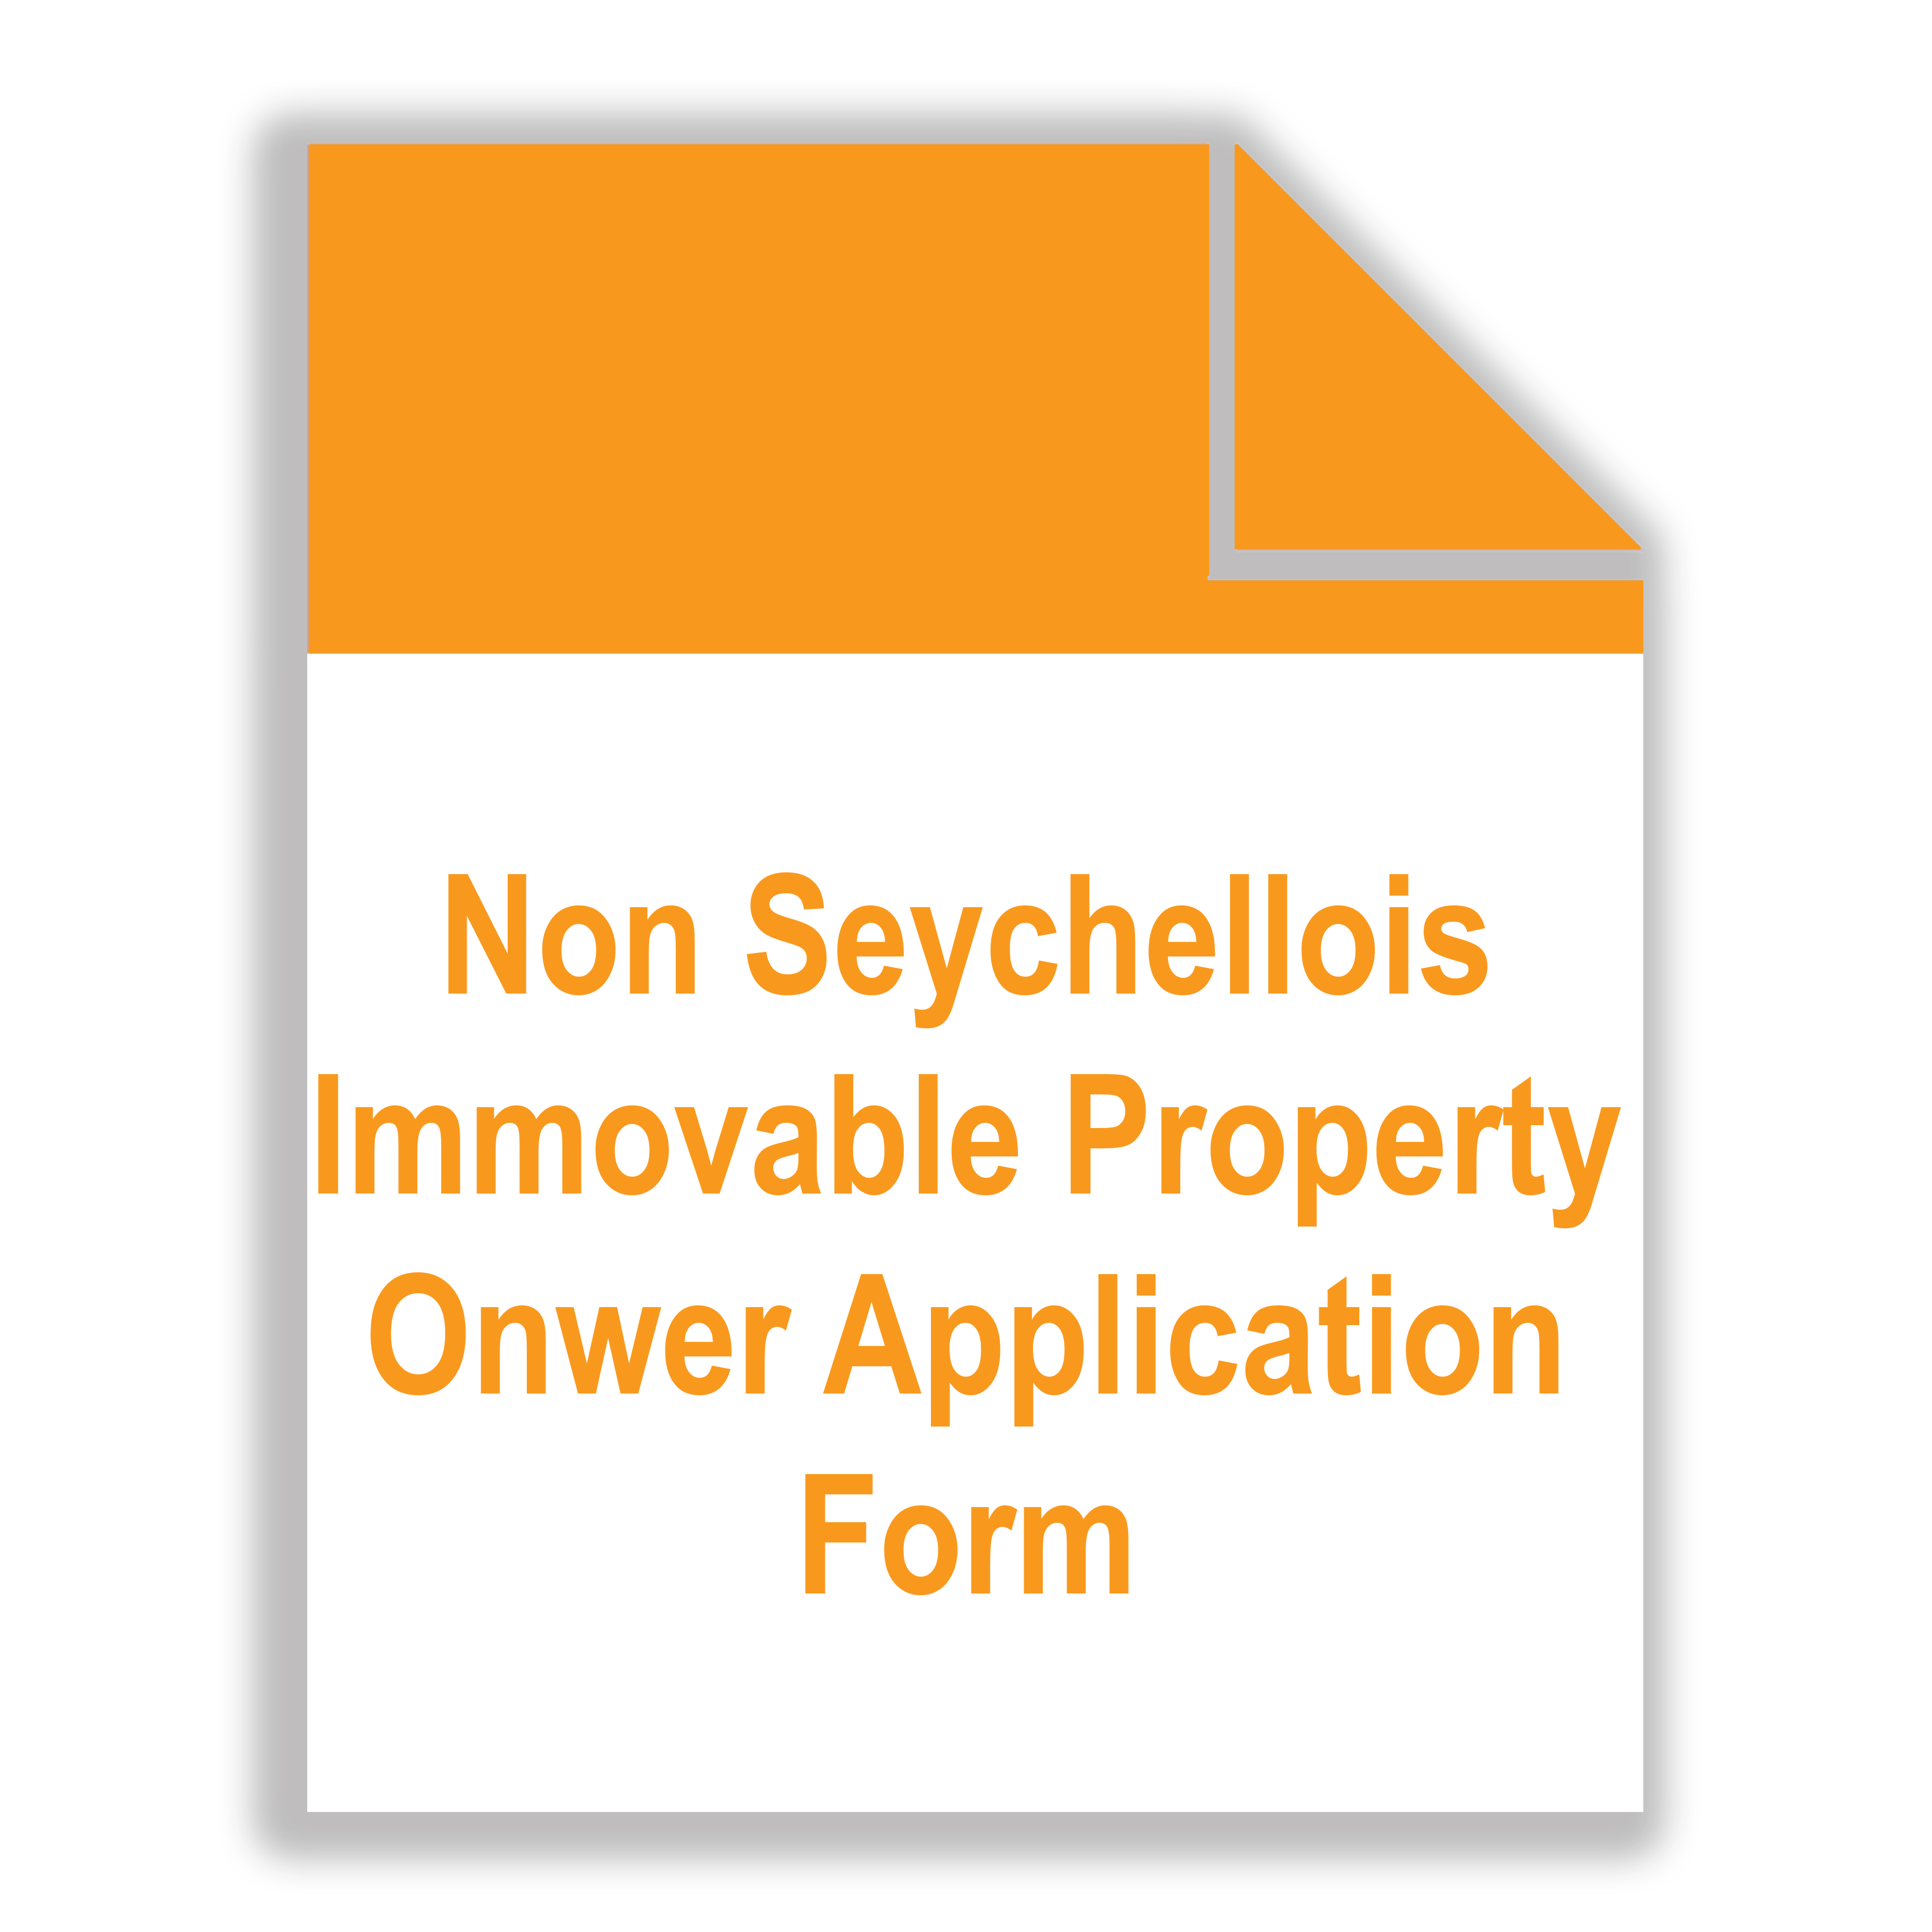 Non_Seychellois_Immovable_Property_Onwer_Application_Form